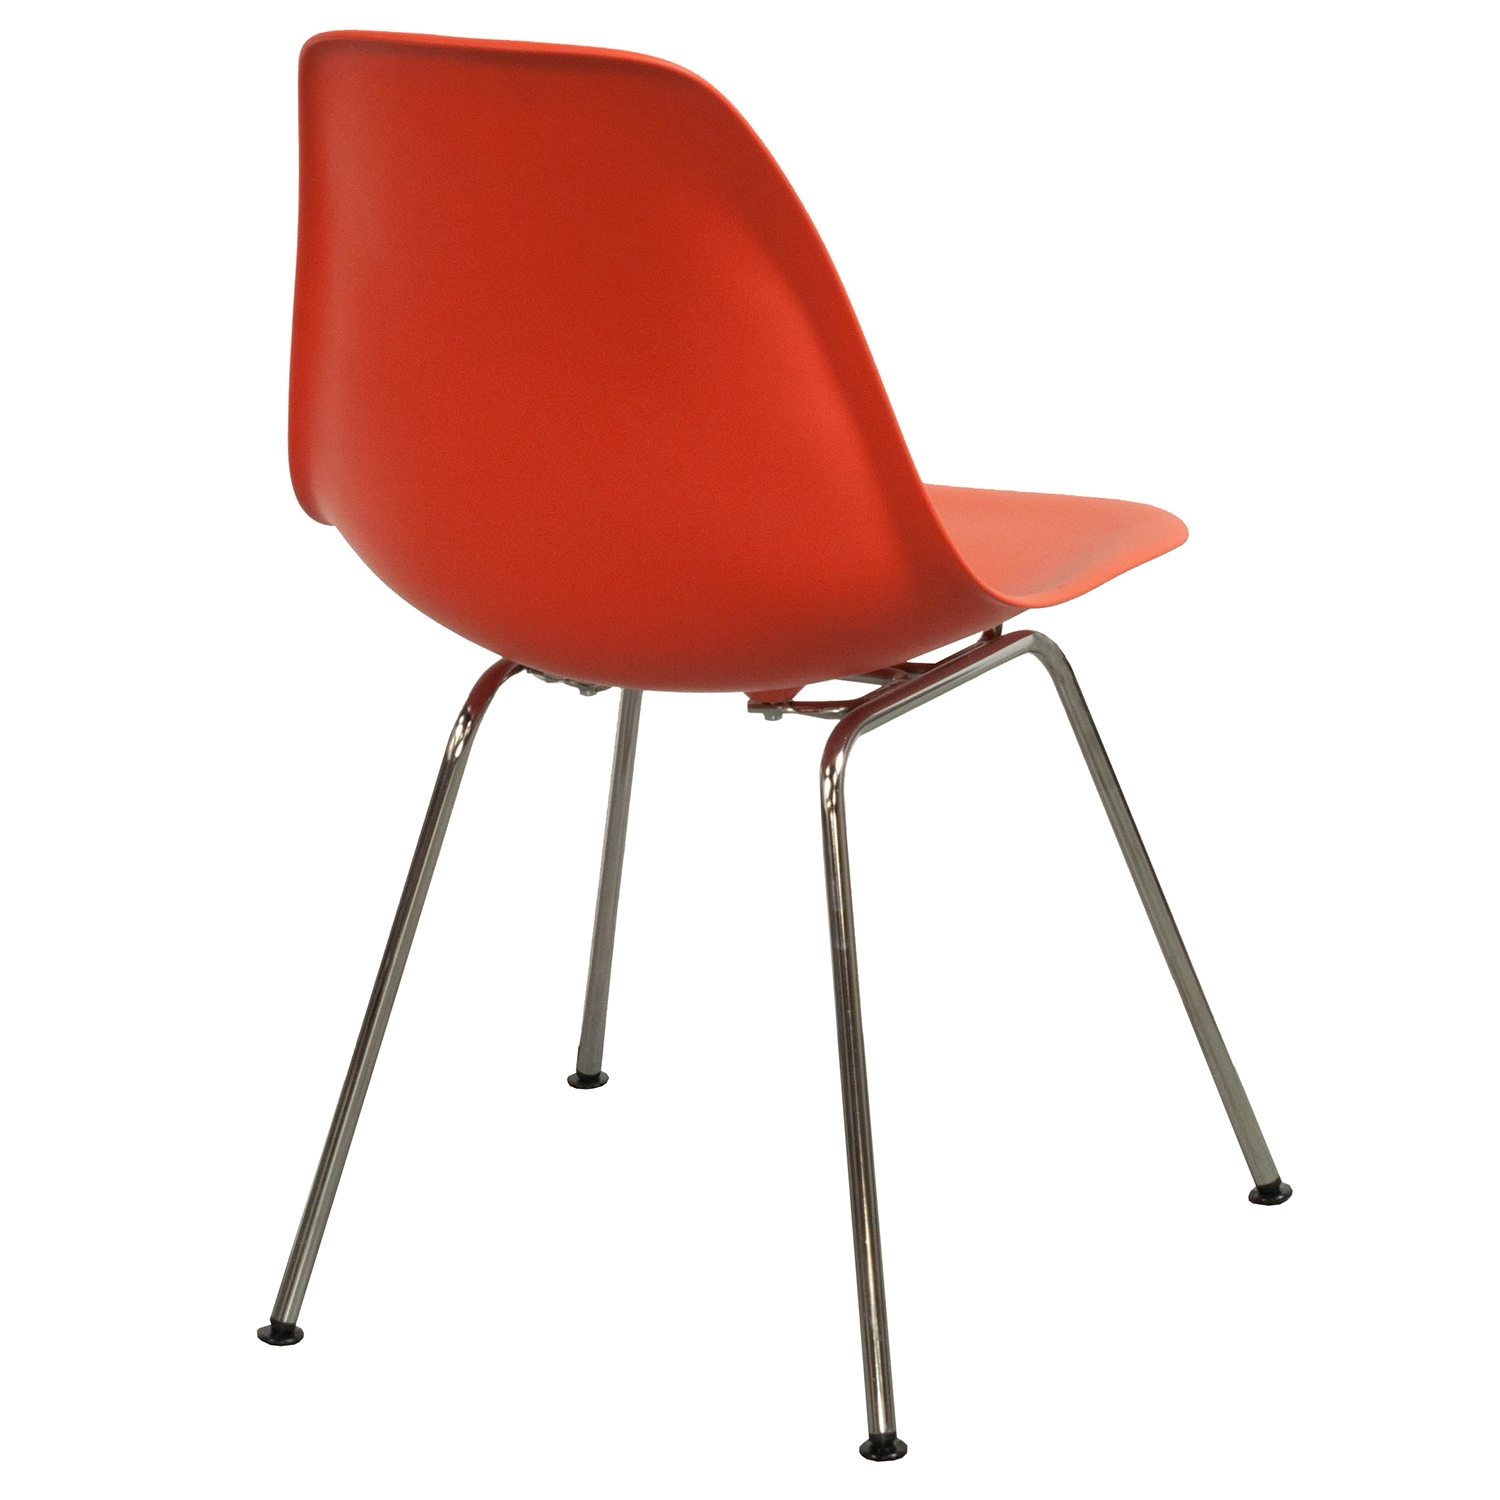 plastic molded chairs rubberwood butterfly table with 4 herman miller eames side chair red orange